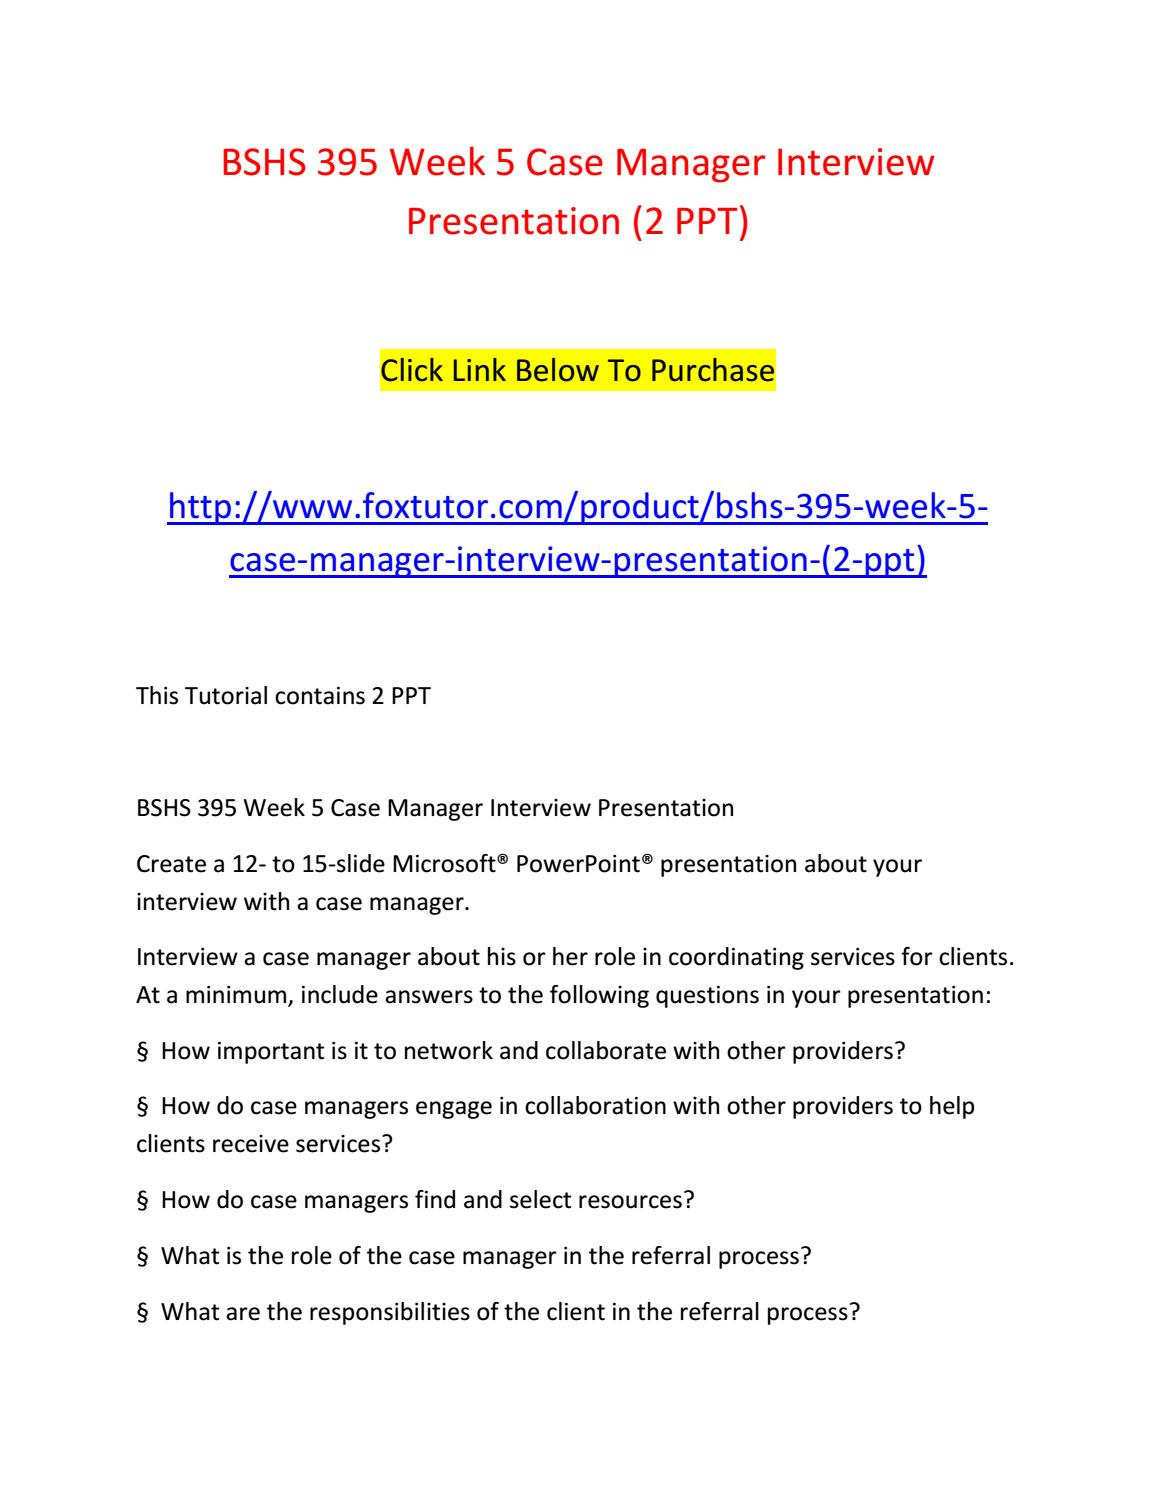 Bshs 395 Week 5 Case Manager Interview Presentation 2 Ppt By